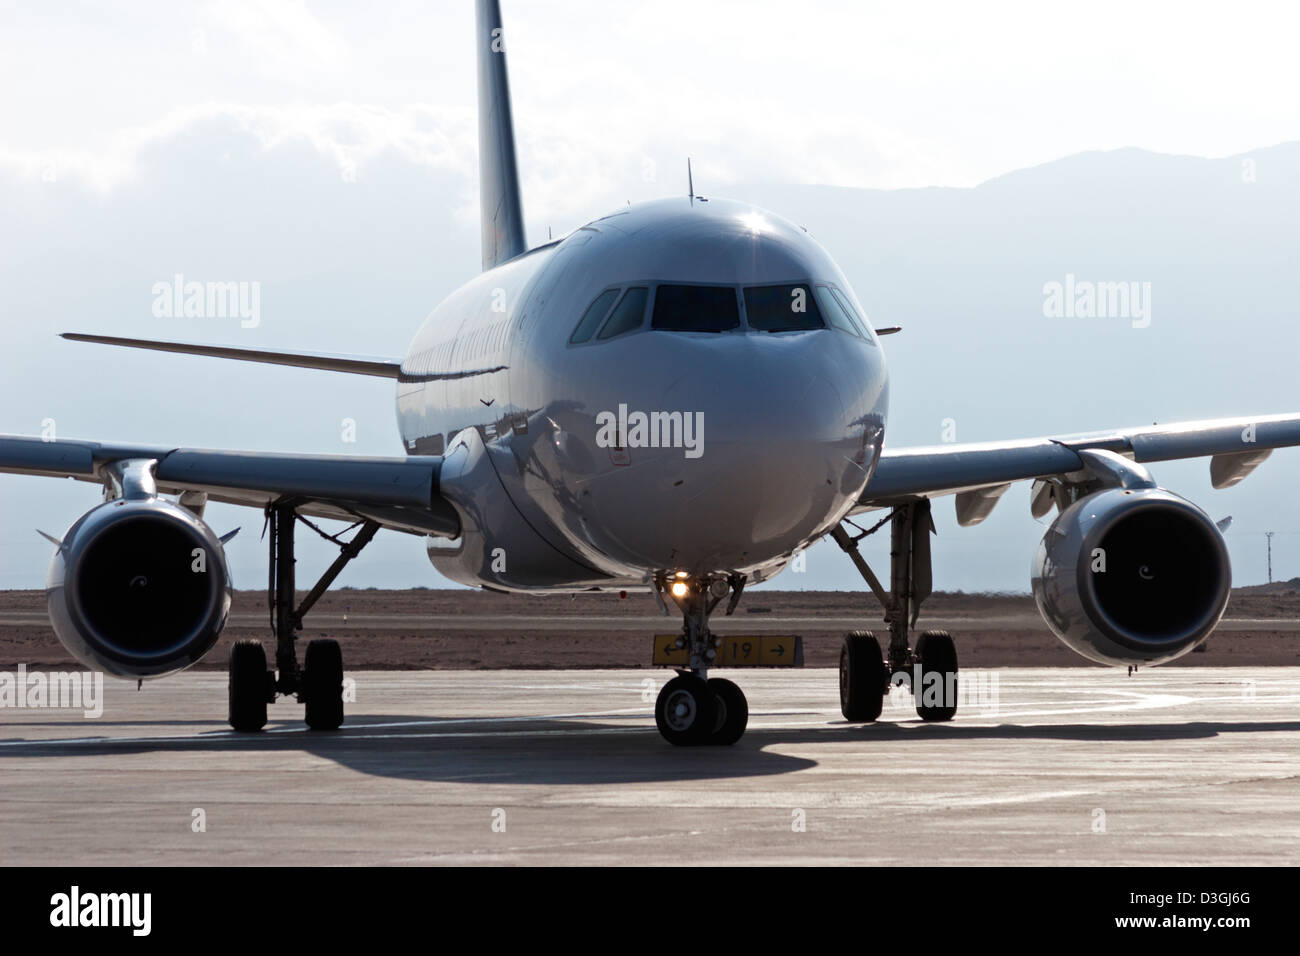 airbus 319 taxi taxiing departing Lan Chile - Stock Image